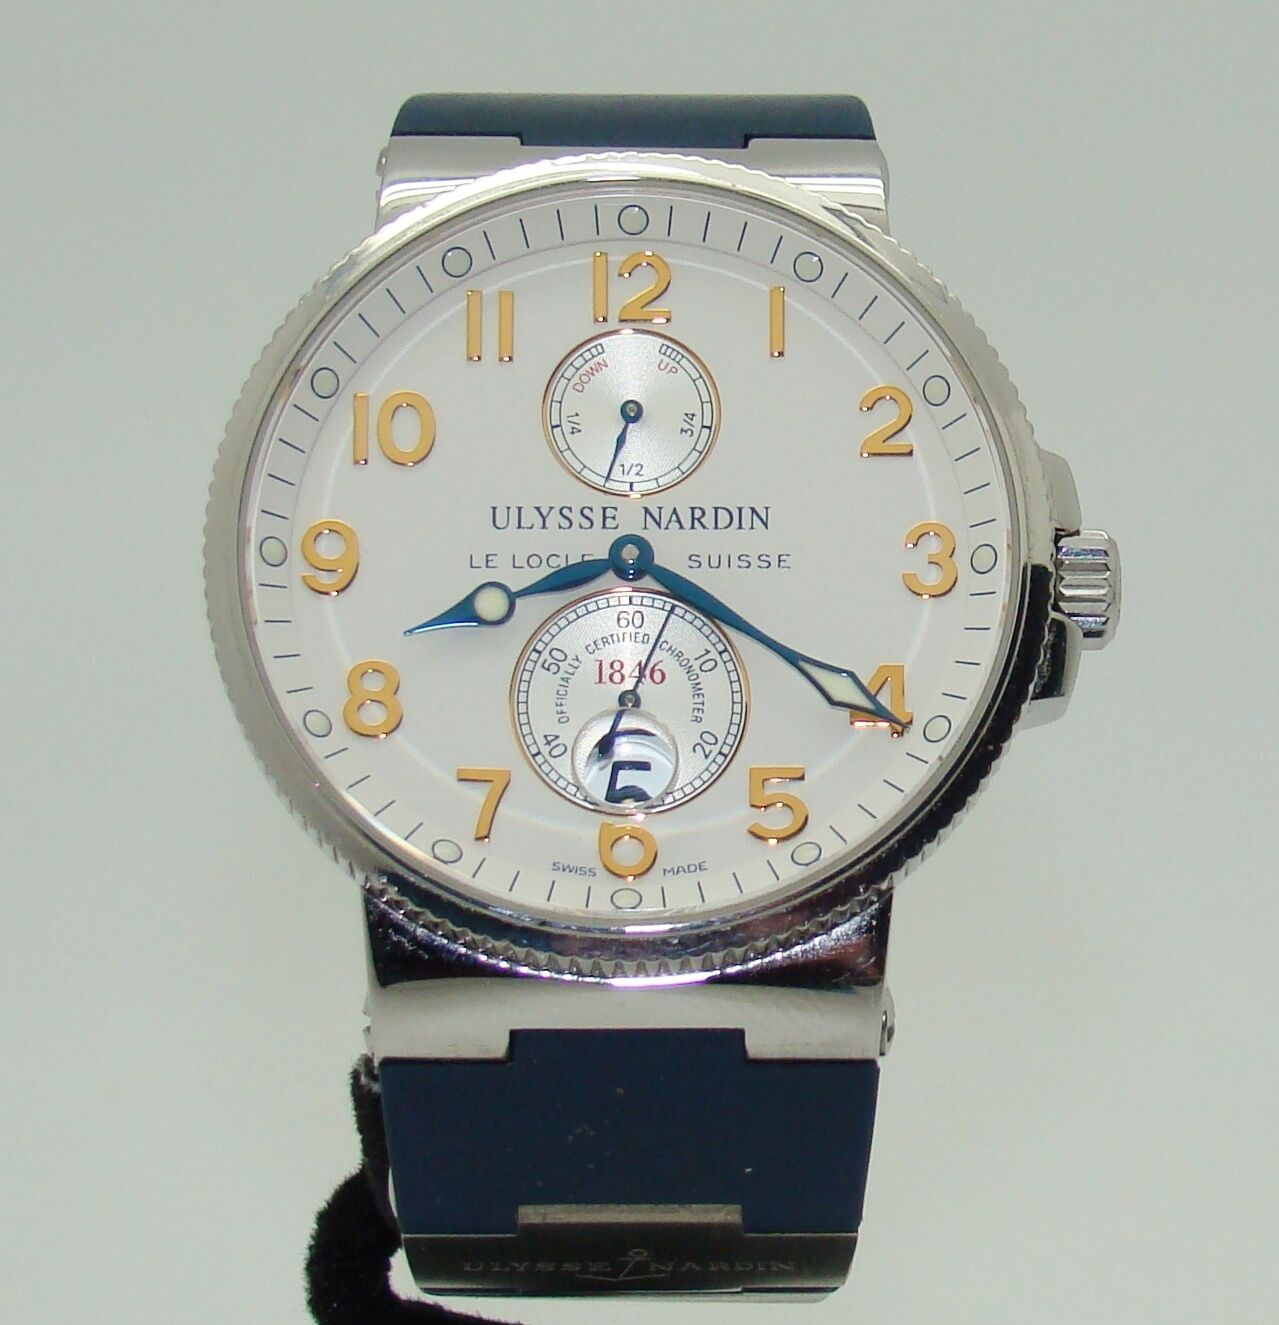 ULYSSE NARDIN MARINE CHRONOMETER AUTOMATIC WATCH wPOWER RESERVE INDICATOR & DATE - watch picture 1